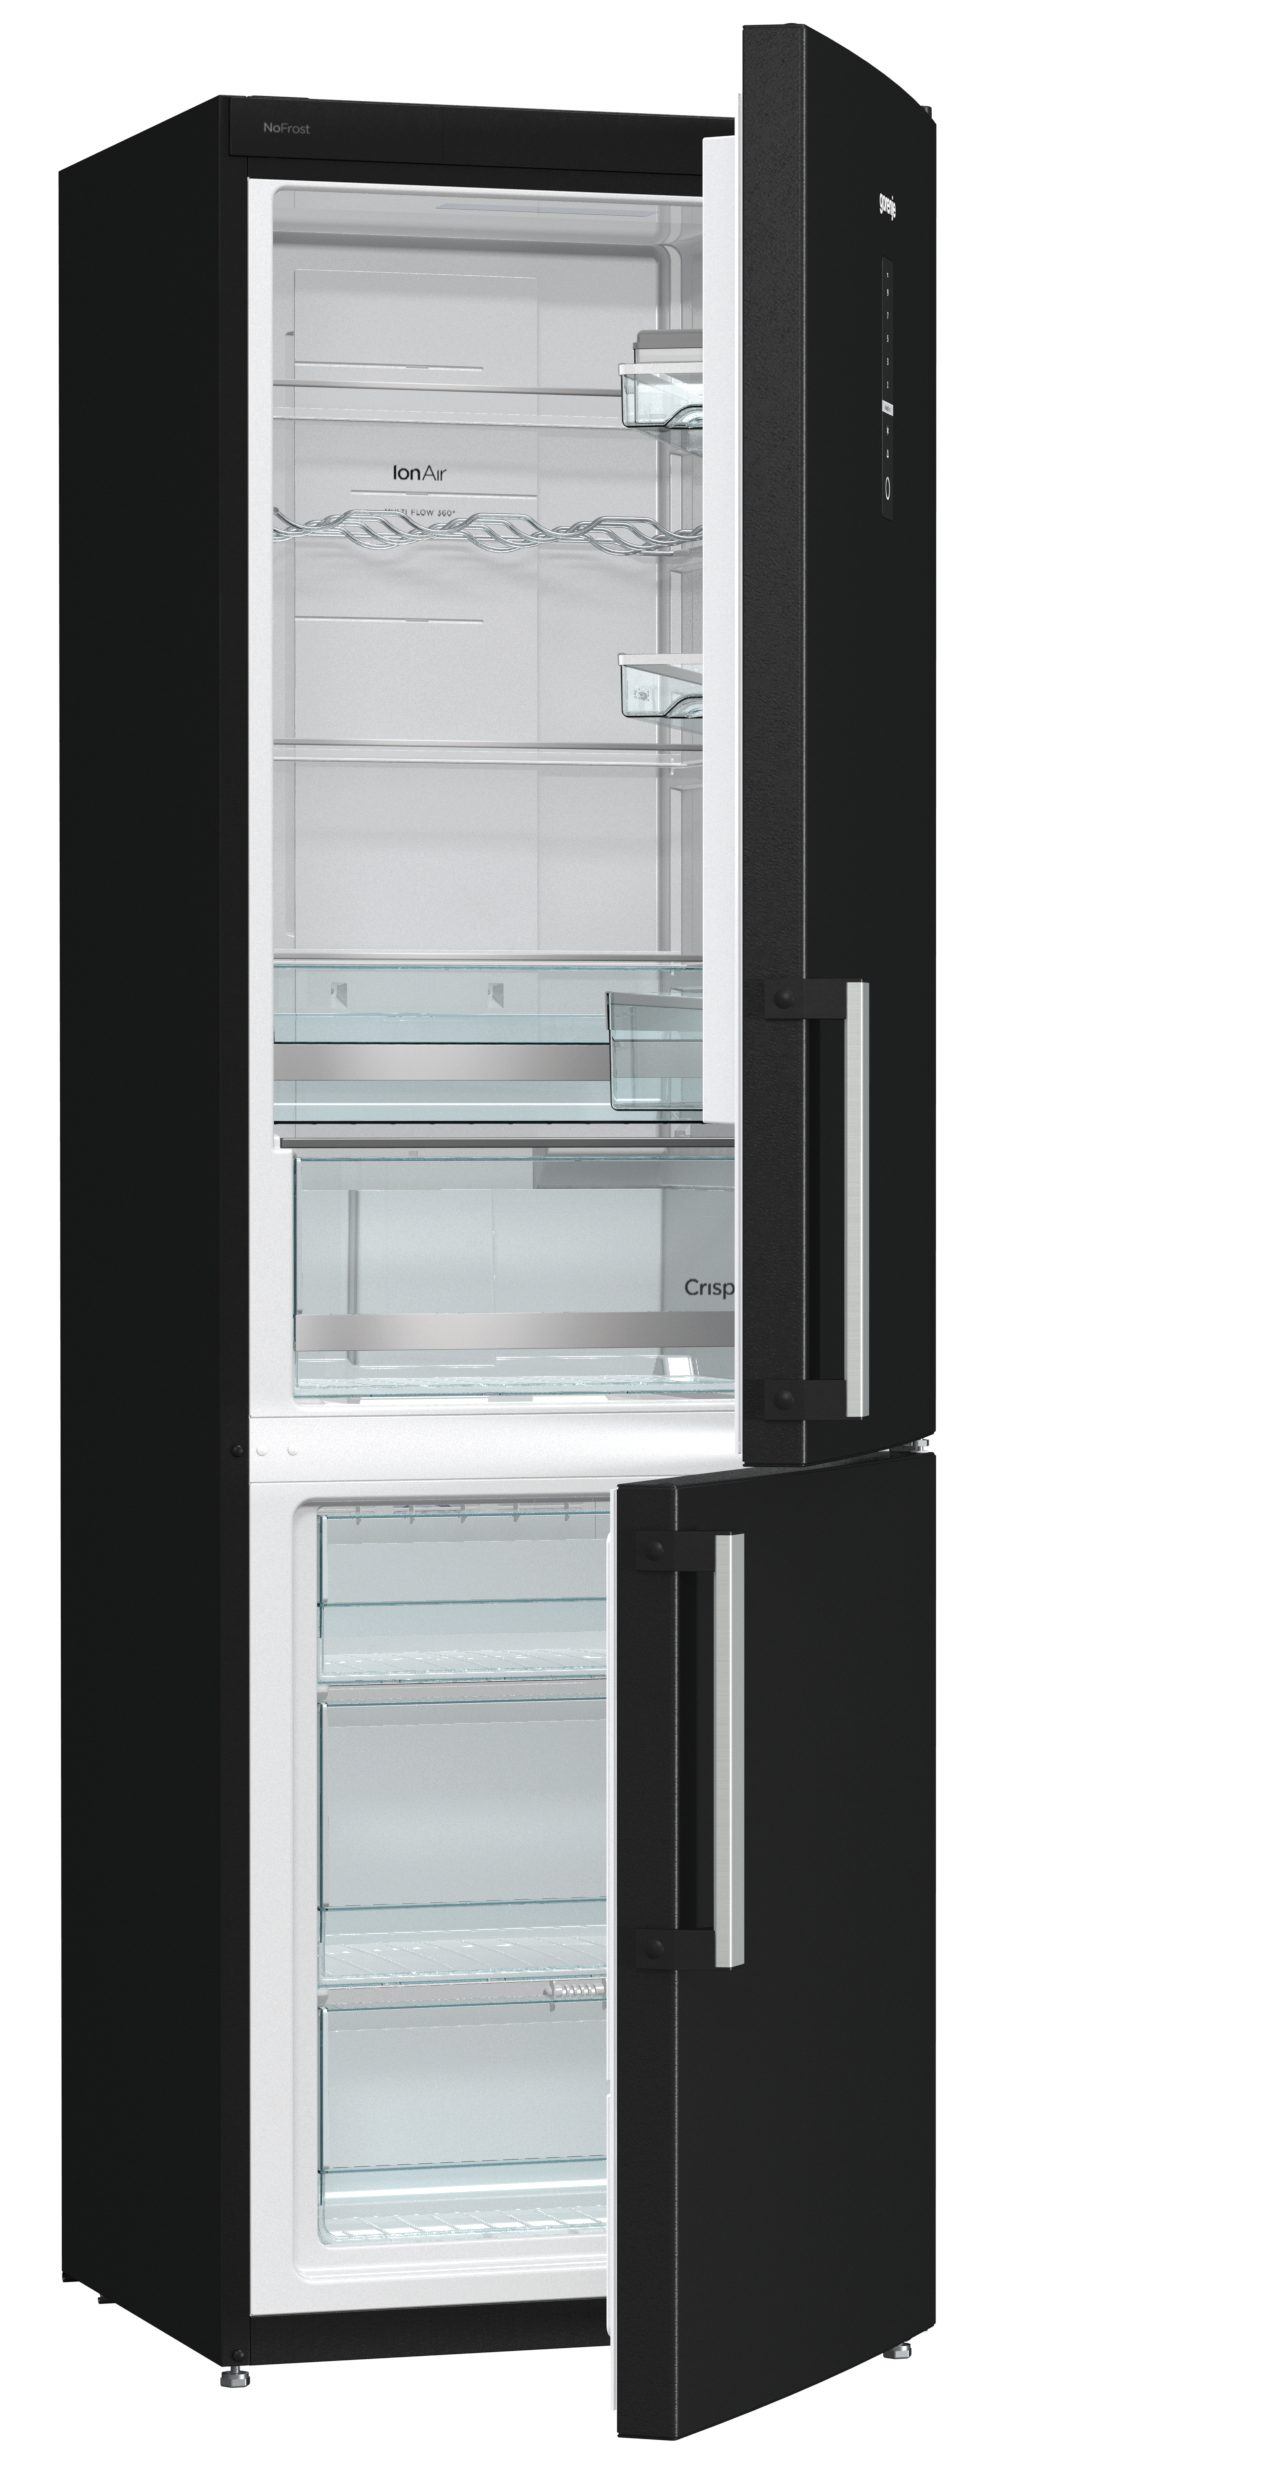 frigo combinato da libera installazione nrk6192mbk gorenje. Black Bedroom Furniture Sets. Home Design Ideas